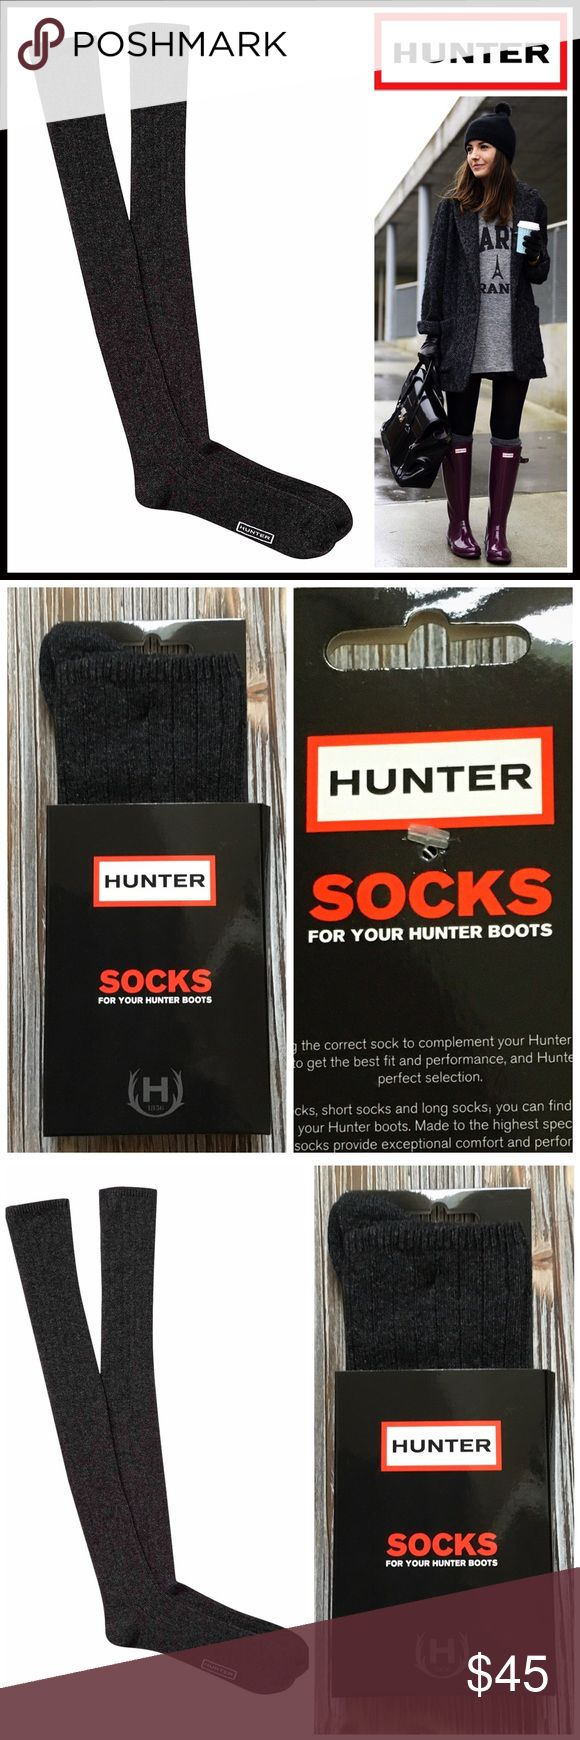 HUNTER ORIGINAL Tall Boot Socks 💟 NEW WITH TAGS 💟  HUNTER ORIGINAL Tall Boot Socks  * Super soft, cozy & comfortable fabric * Wool blend construction w/ ribbed knit detail * Stretch-to-fit; Logo detail * One size fits many, approx shoes sizes 5.5-11, tall knee high boot length * Designed for 'Hunter Original Tall Rain Boot' Fabric- 37% wool, 28% viscose, 26% polyamide, 8% Cashmere, 1% elastane; Machine wash Item# Color-Grey  🚫No Trades🚫 ✅Bundle Discounts✅ Hunter Boots Accessories Hosiery…